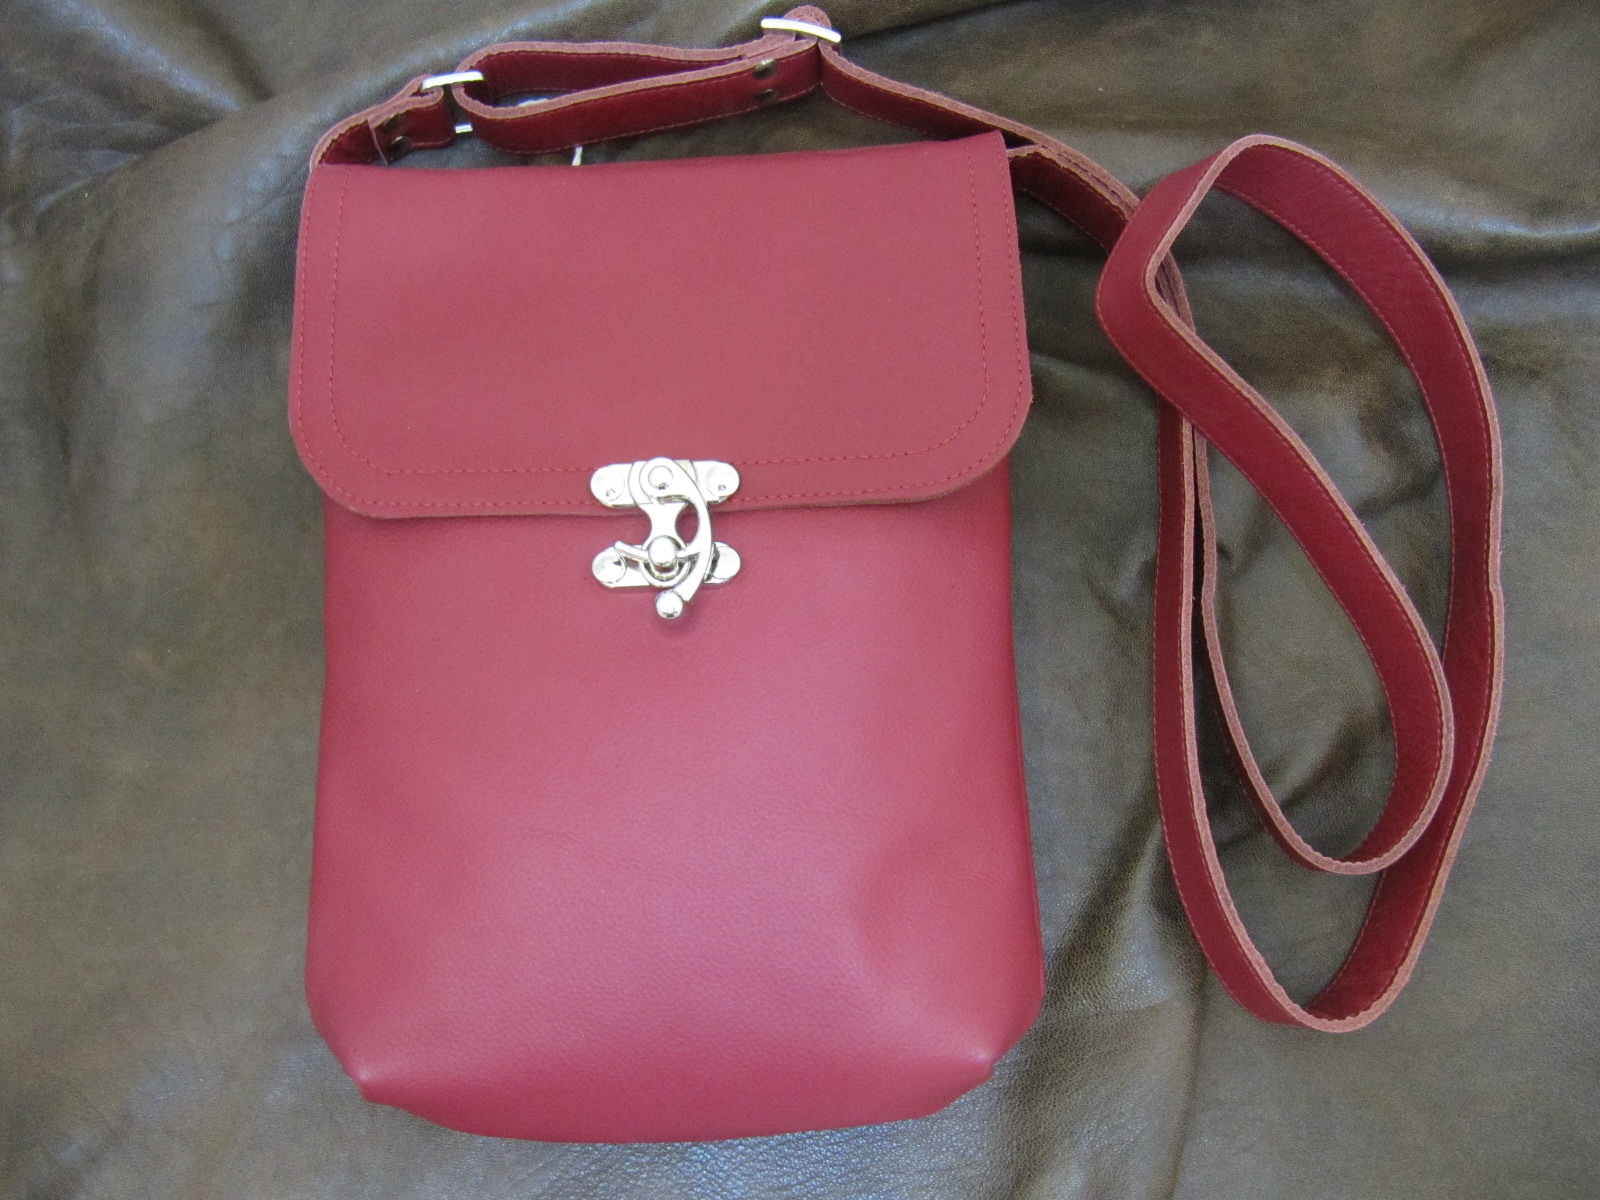 Small messenger bag in red leather